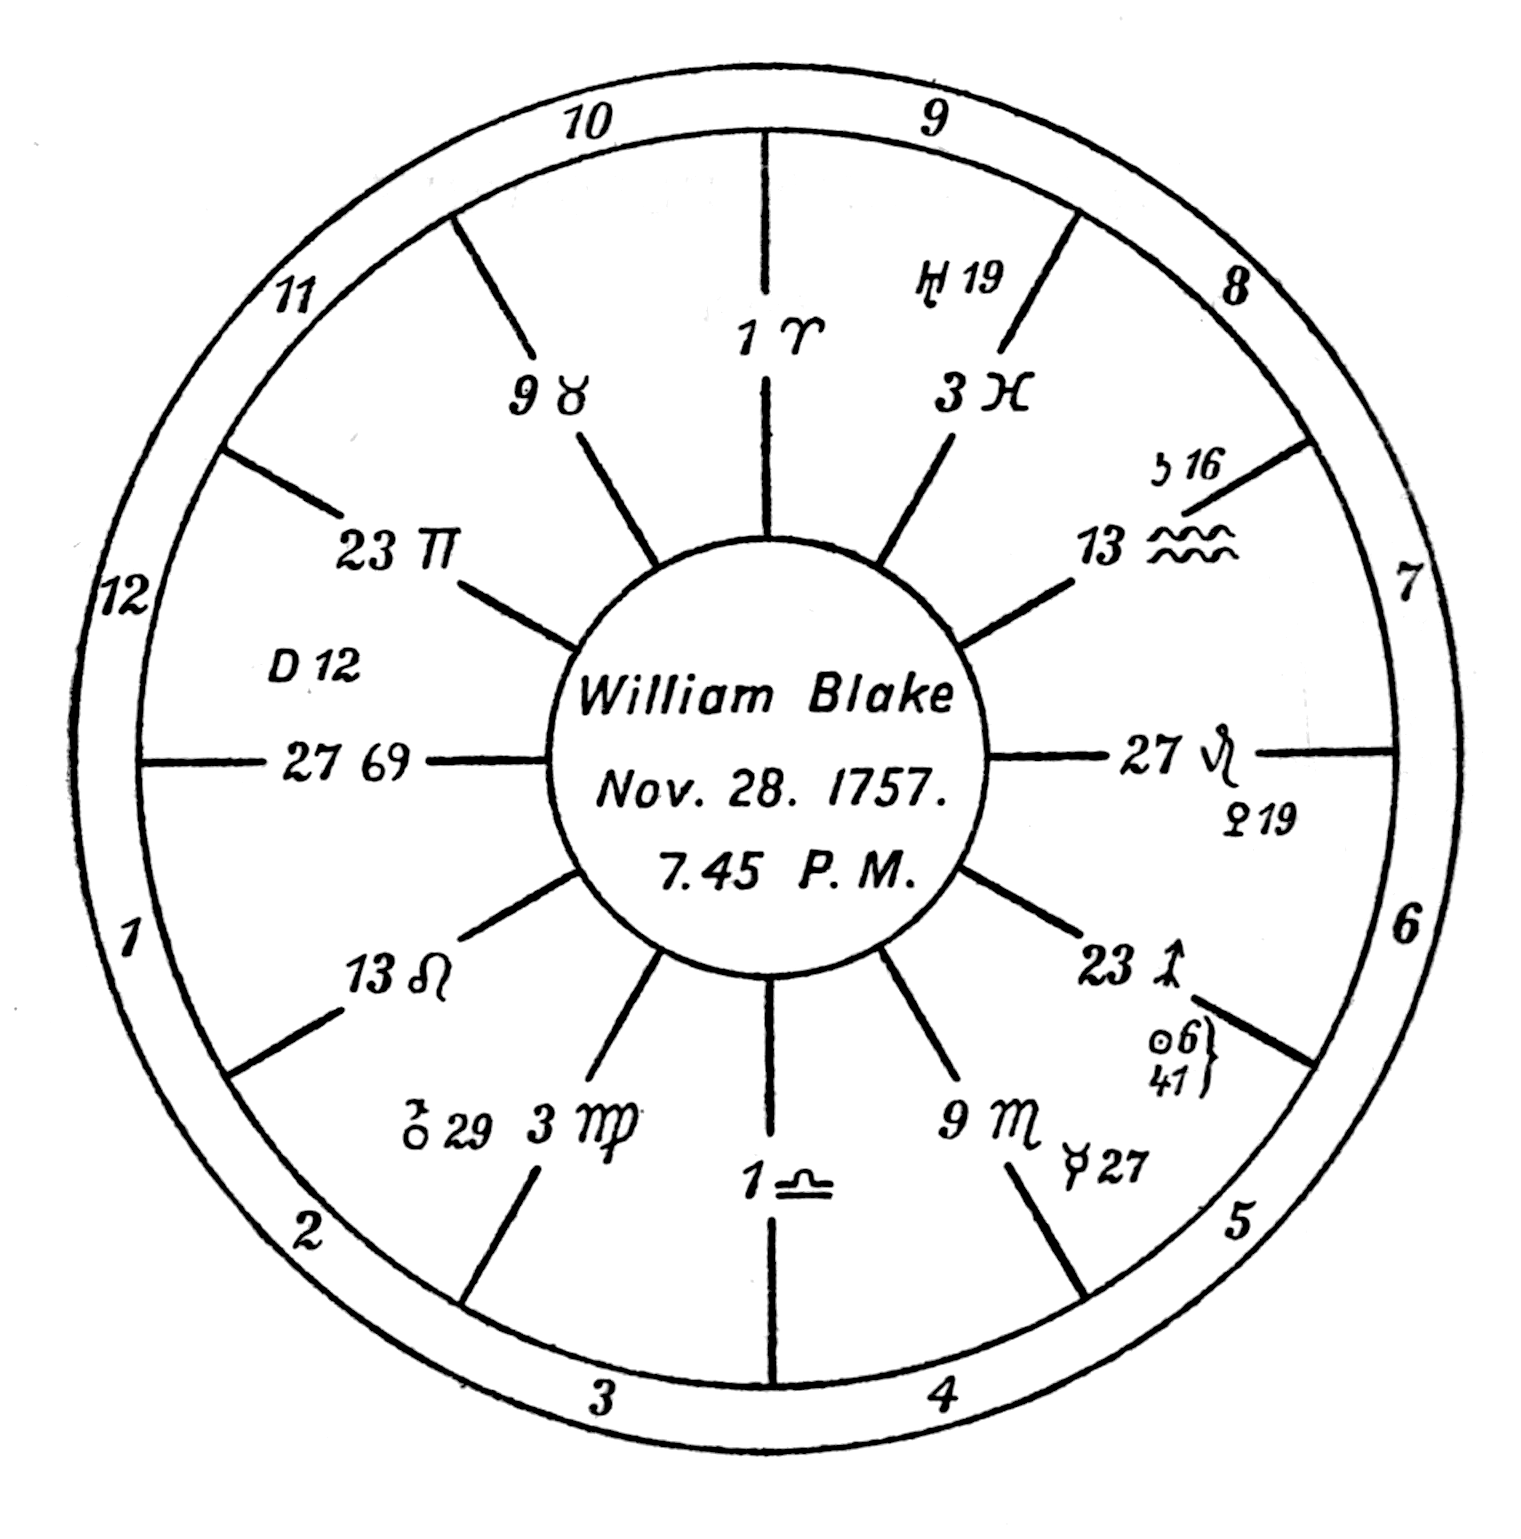 """alt text=A circular design with twelve numbered segments and astrological symbols. At the center is the subject and his birth date, """"William Blake Nov. 28. 1757. 7.45 P.M."""""""